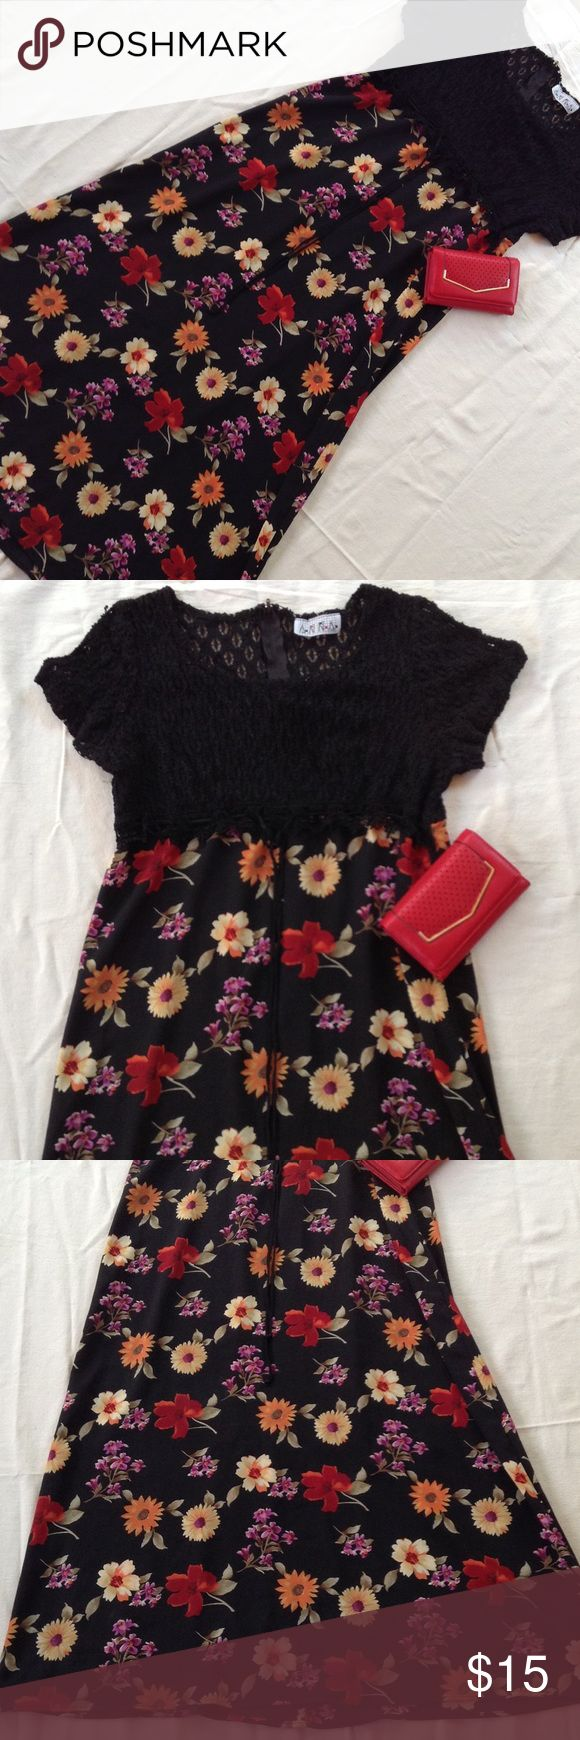 Floral ladies maxi dress Like new condition Dresses Maxi